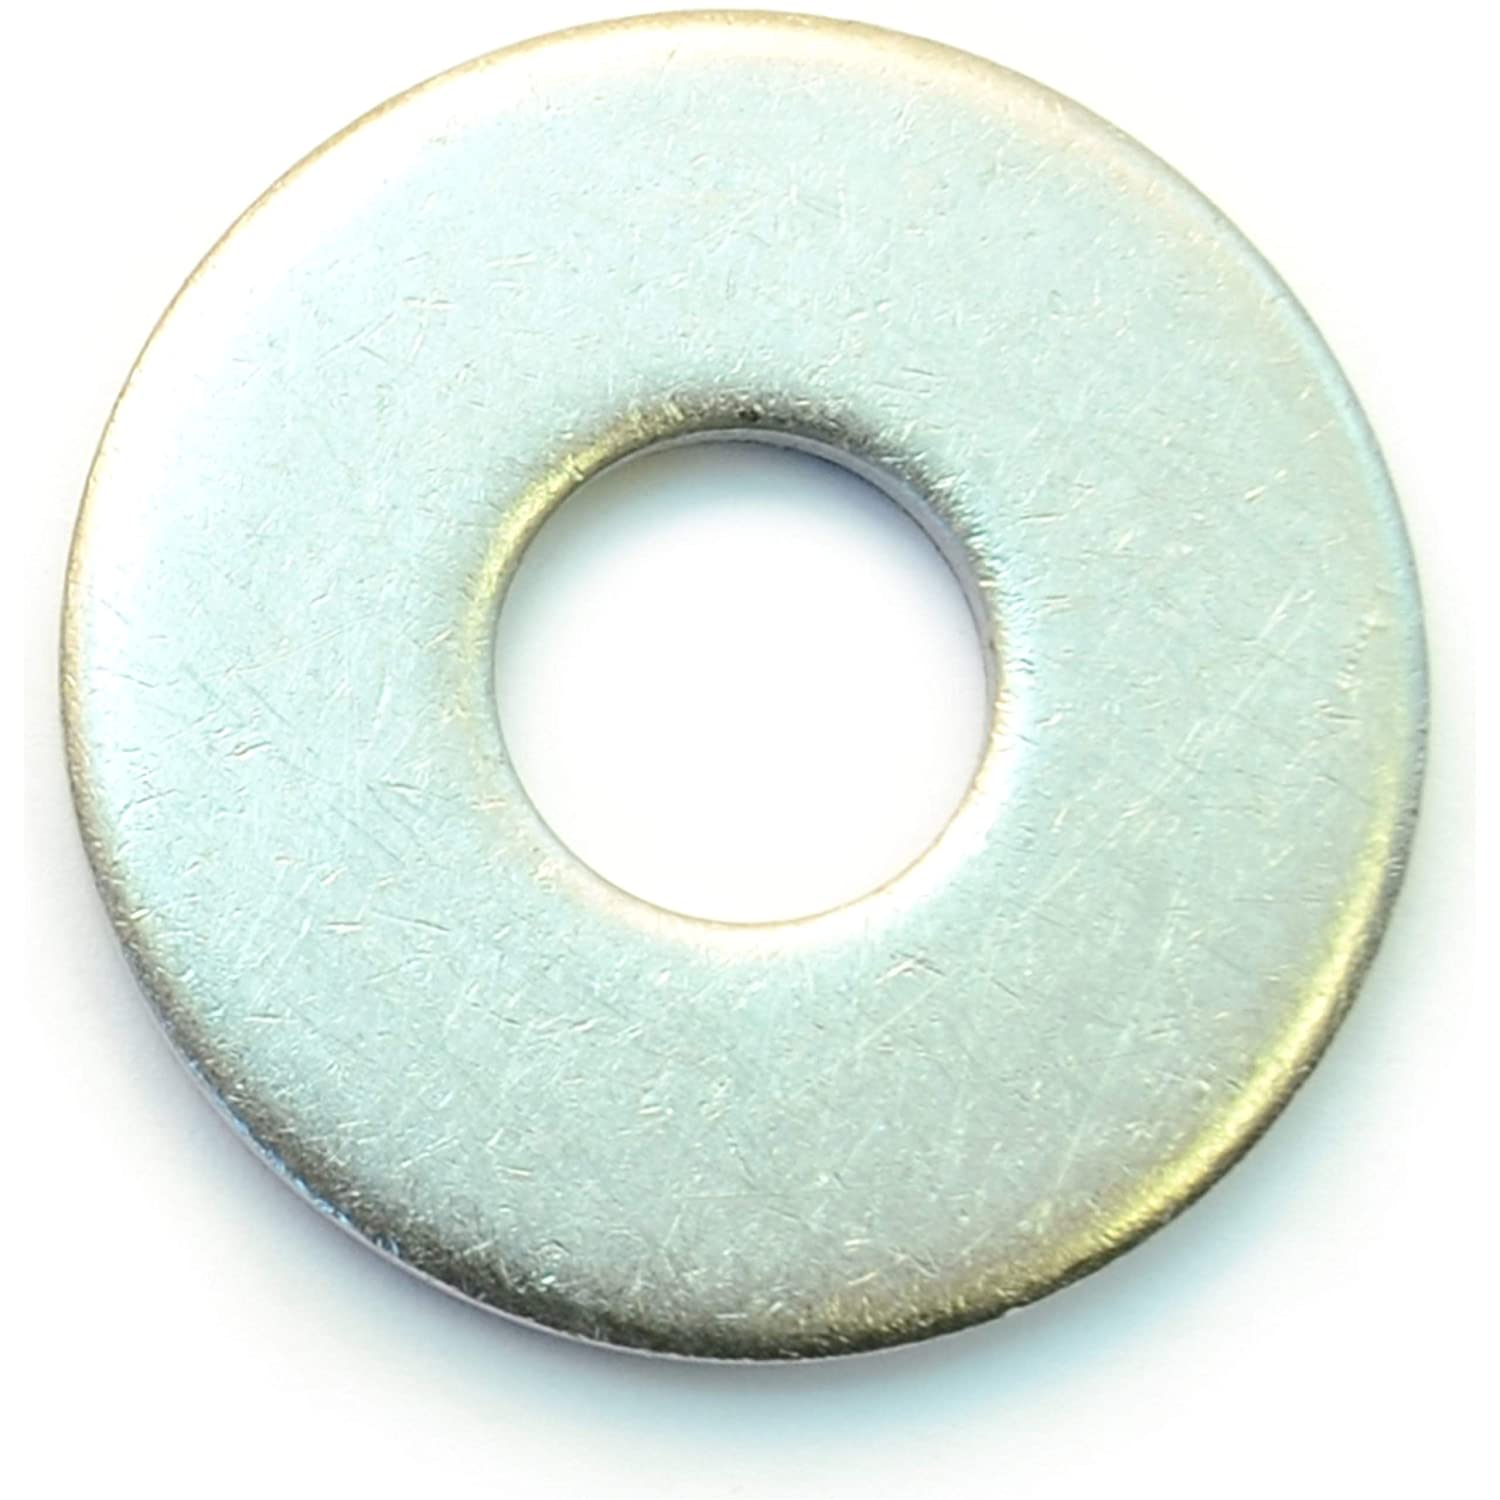 Hard to Find Fastener 0 Fender Washers 10mm x 30mm Piece 10